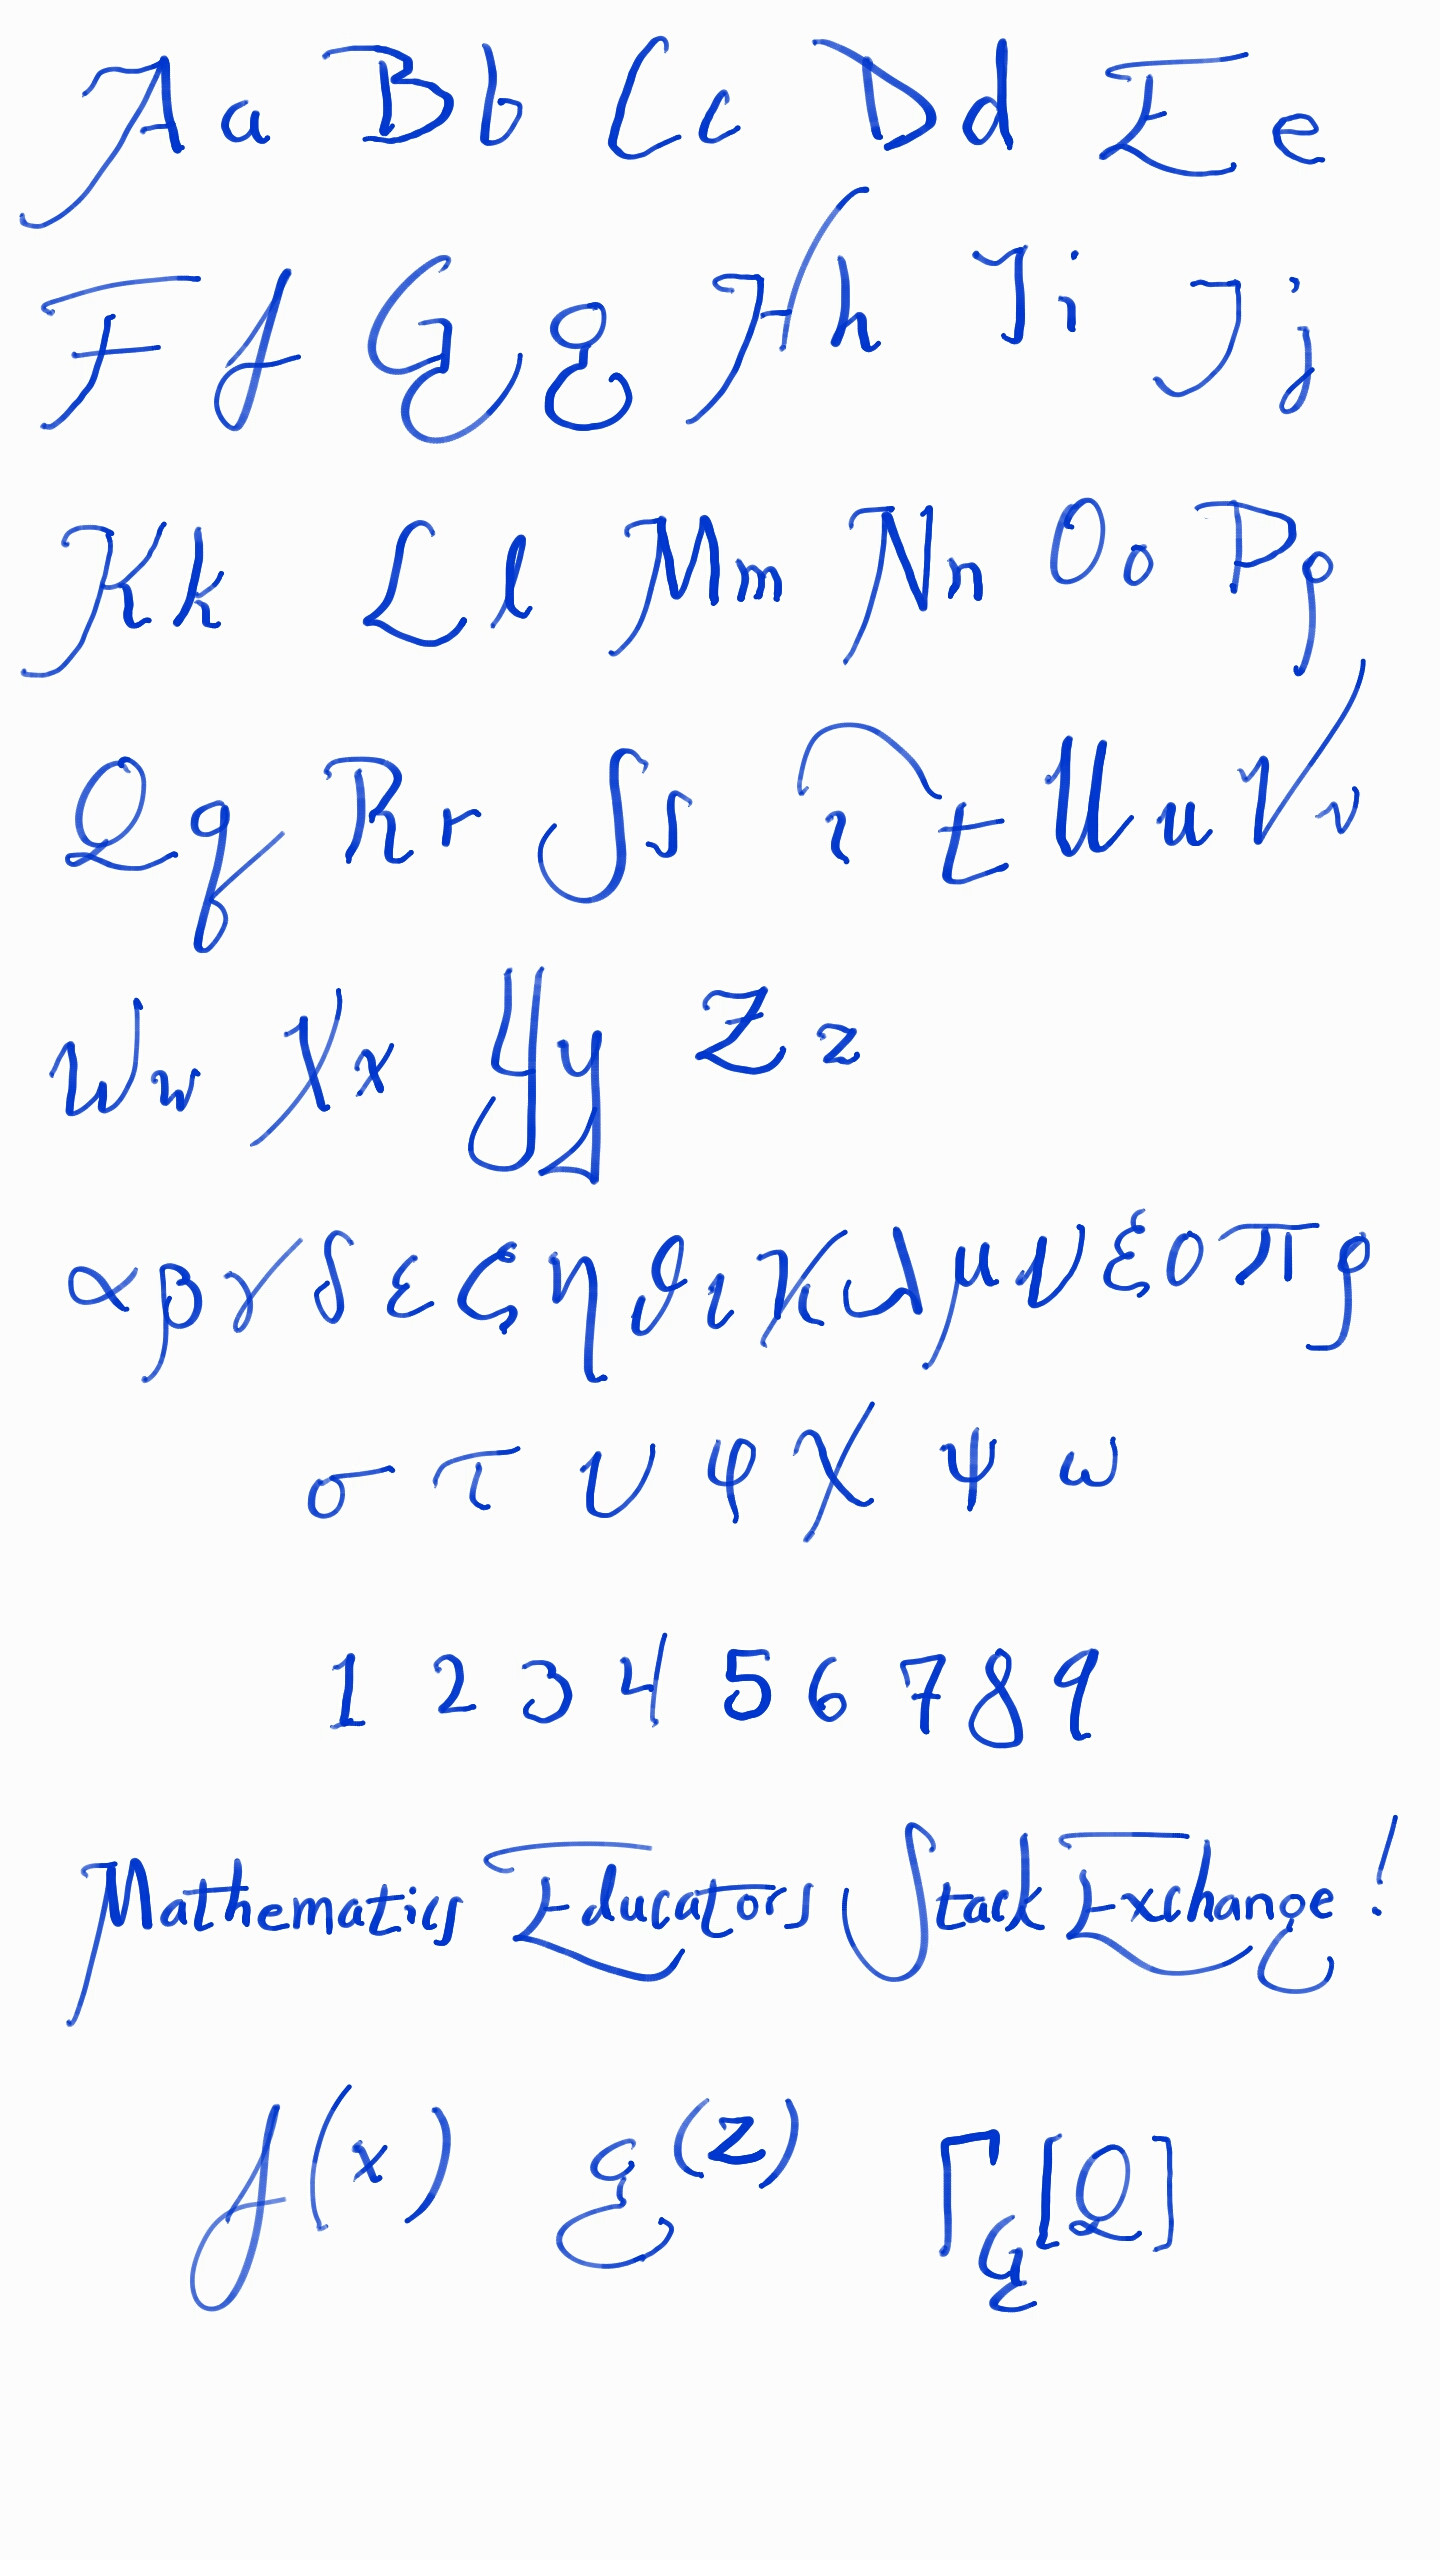 What Is A Good Handwriting Font For Mathematics Mathematics Educators Stack Exchange